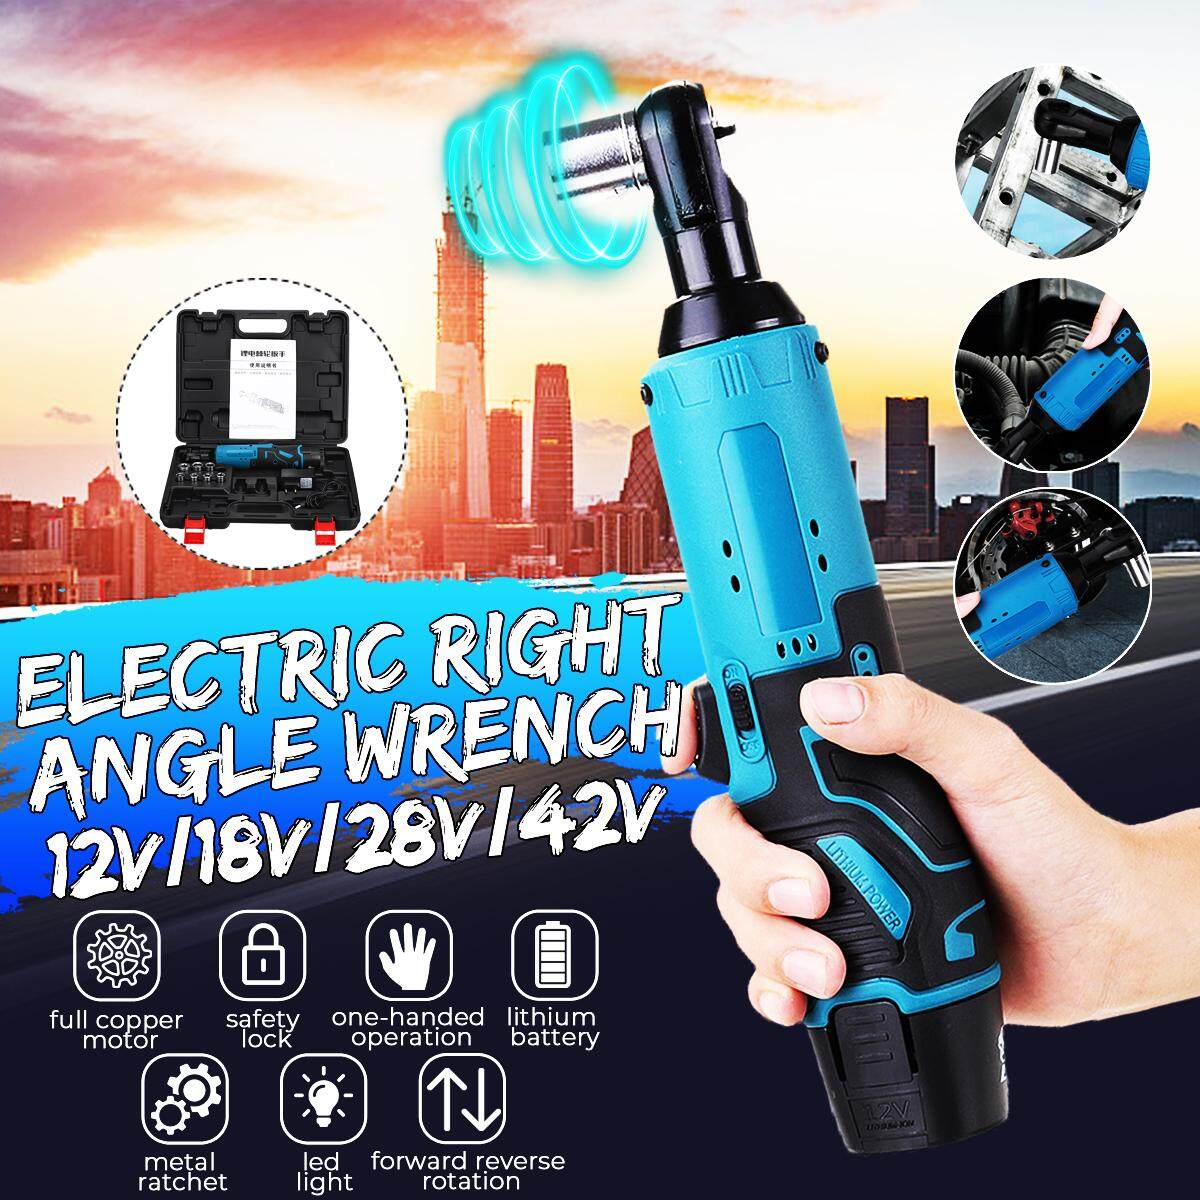 12V 60NM Electric Ratchet Wrench Large Torque 90 Degree Right Angle 3/8 2000RPM 1500mAh Electric Impact Wrench with 11-16mm Sleeve